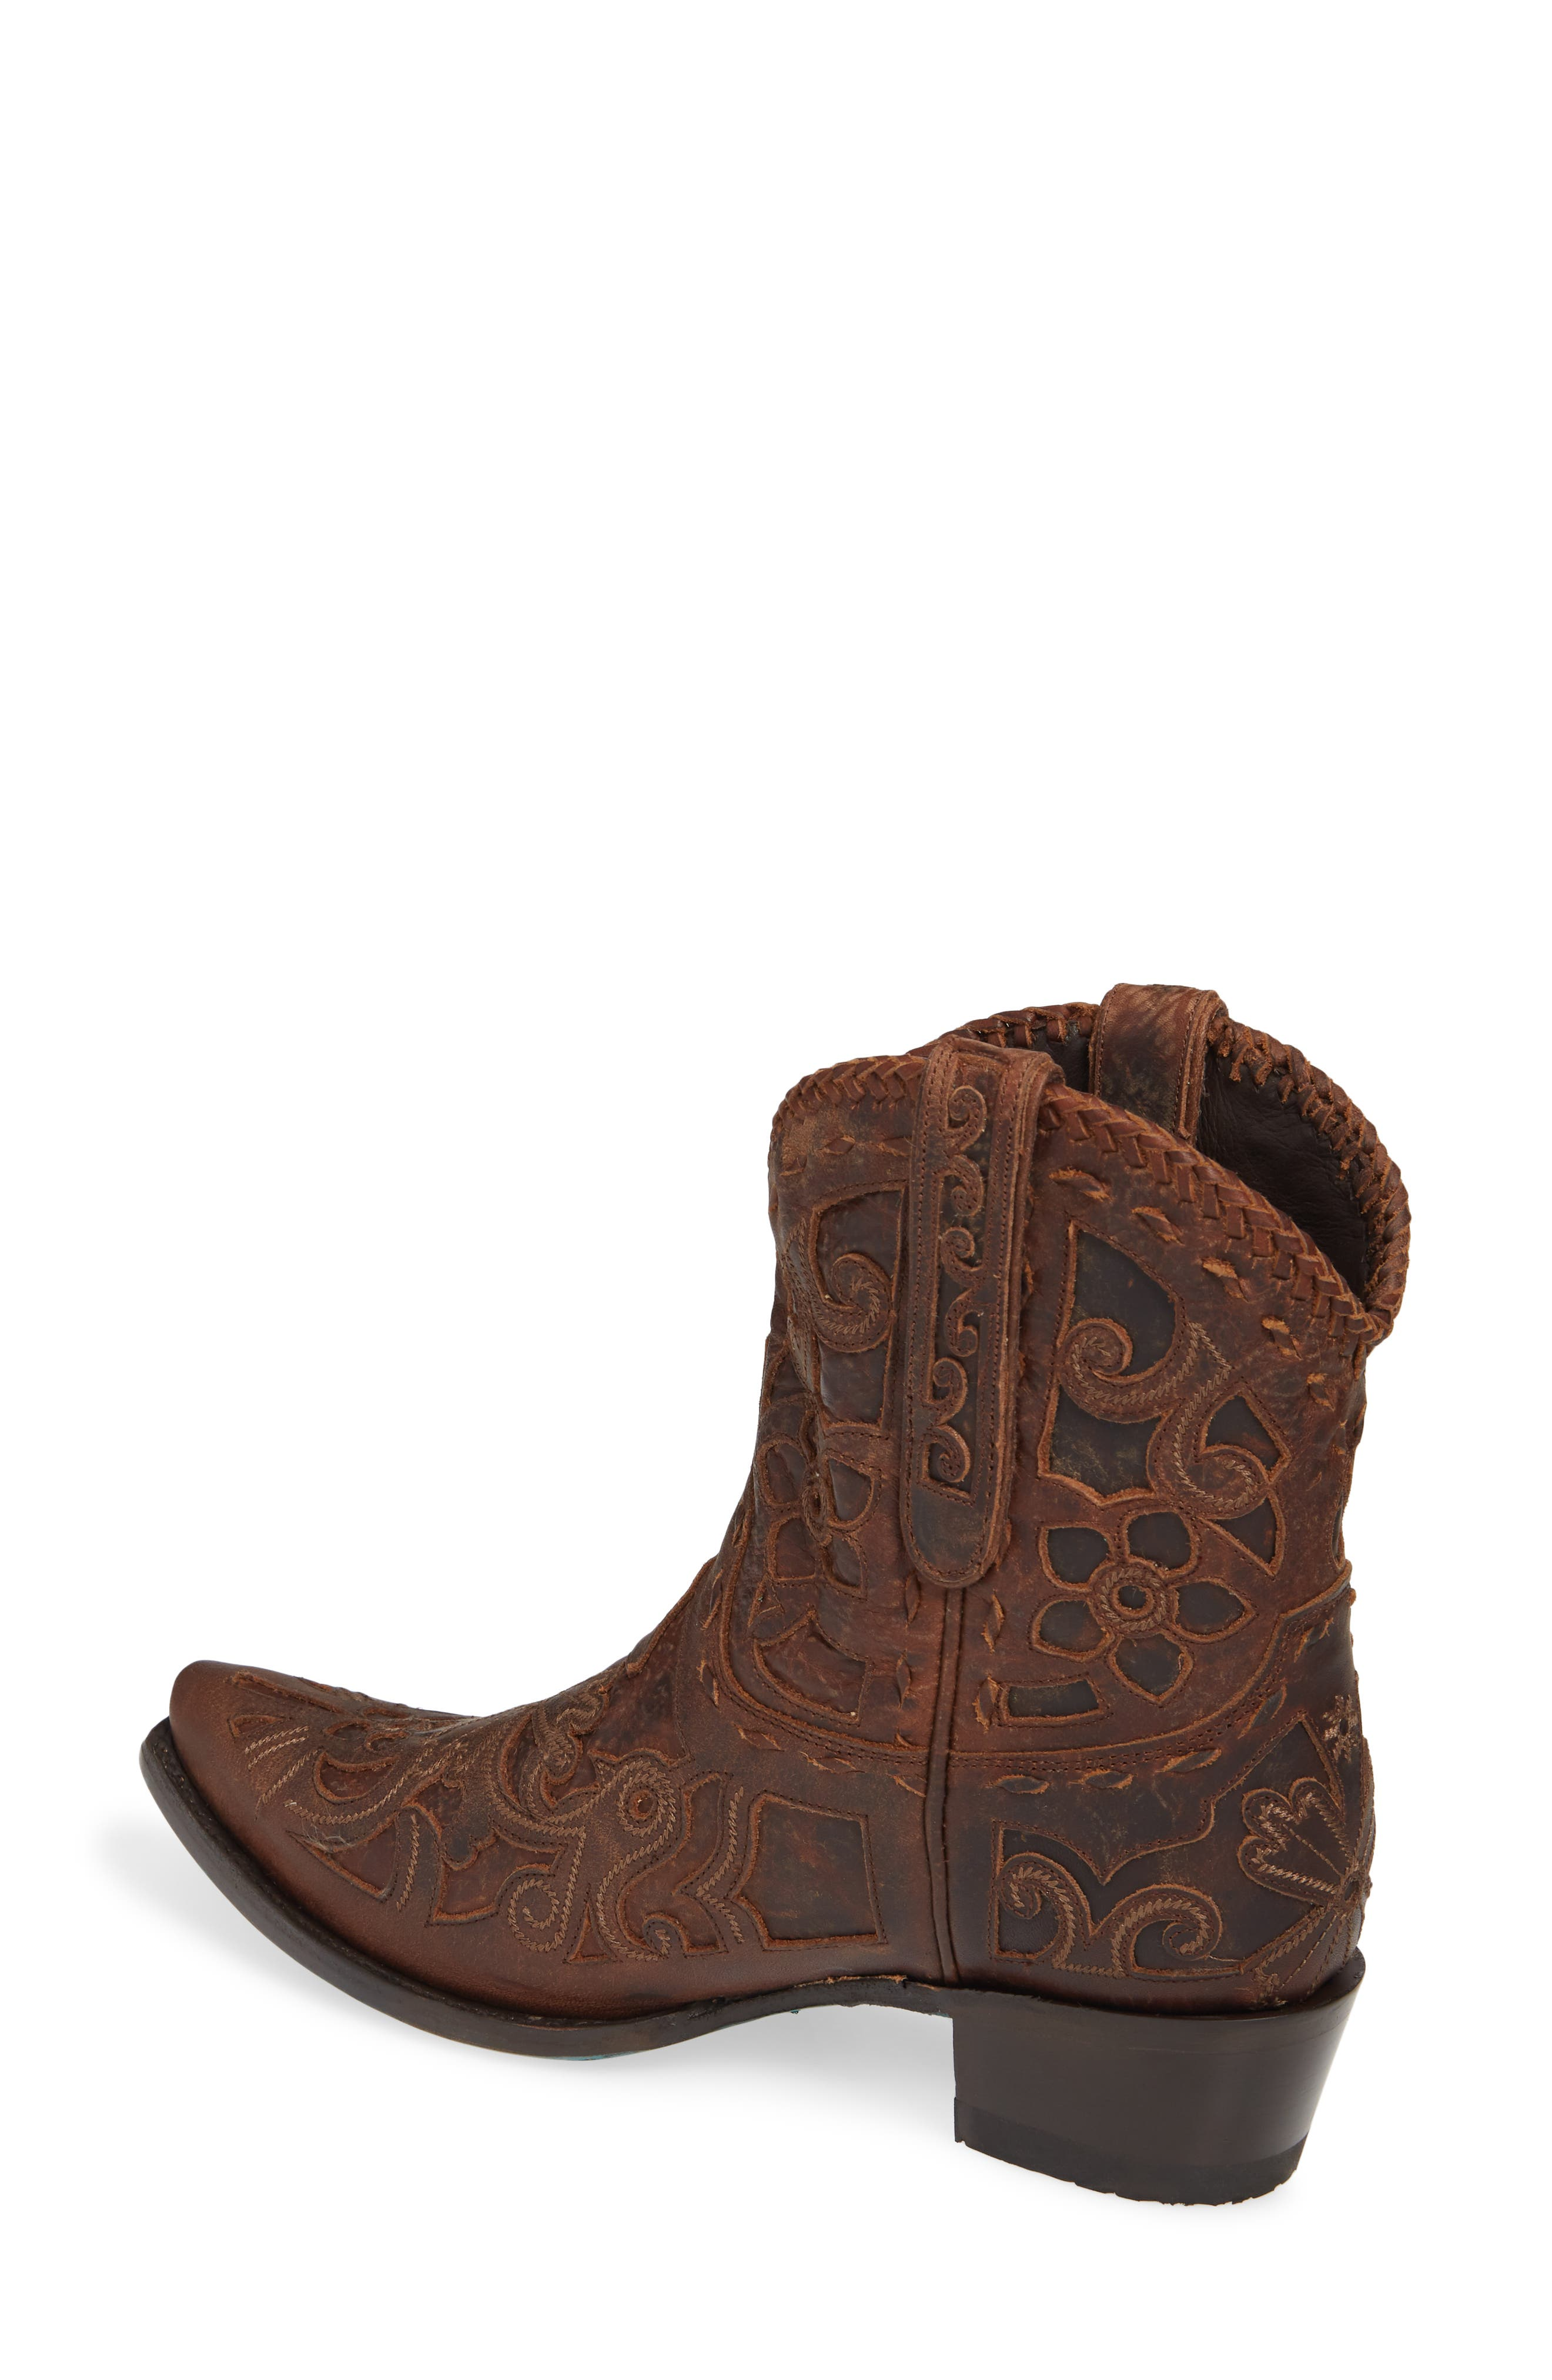 LANE BOOTS,                             Robin Western Boot,                             Alternate thumbnail 2, color,                             DARK BROWN LEATHER